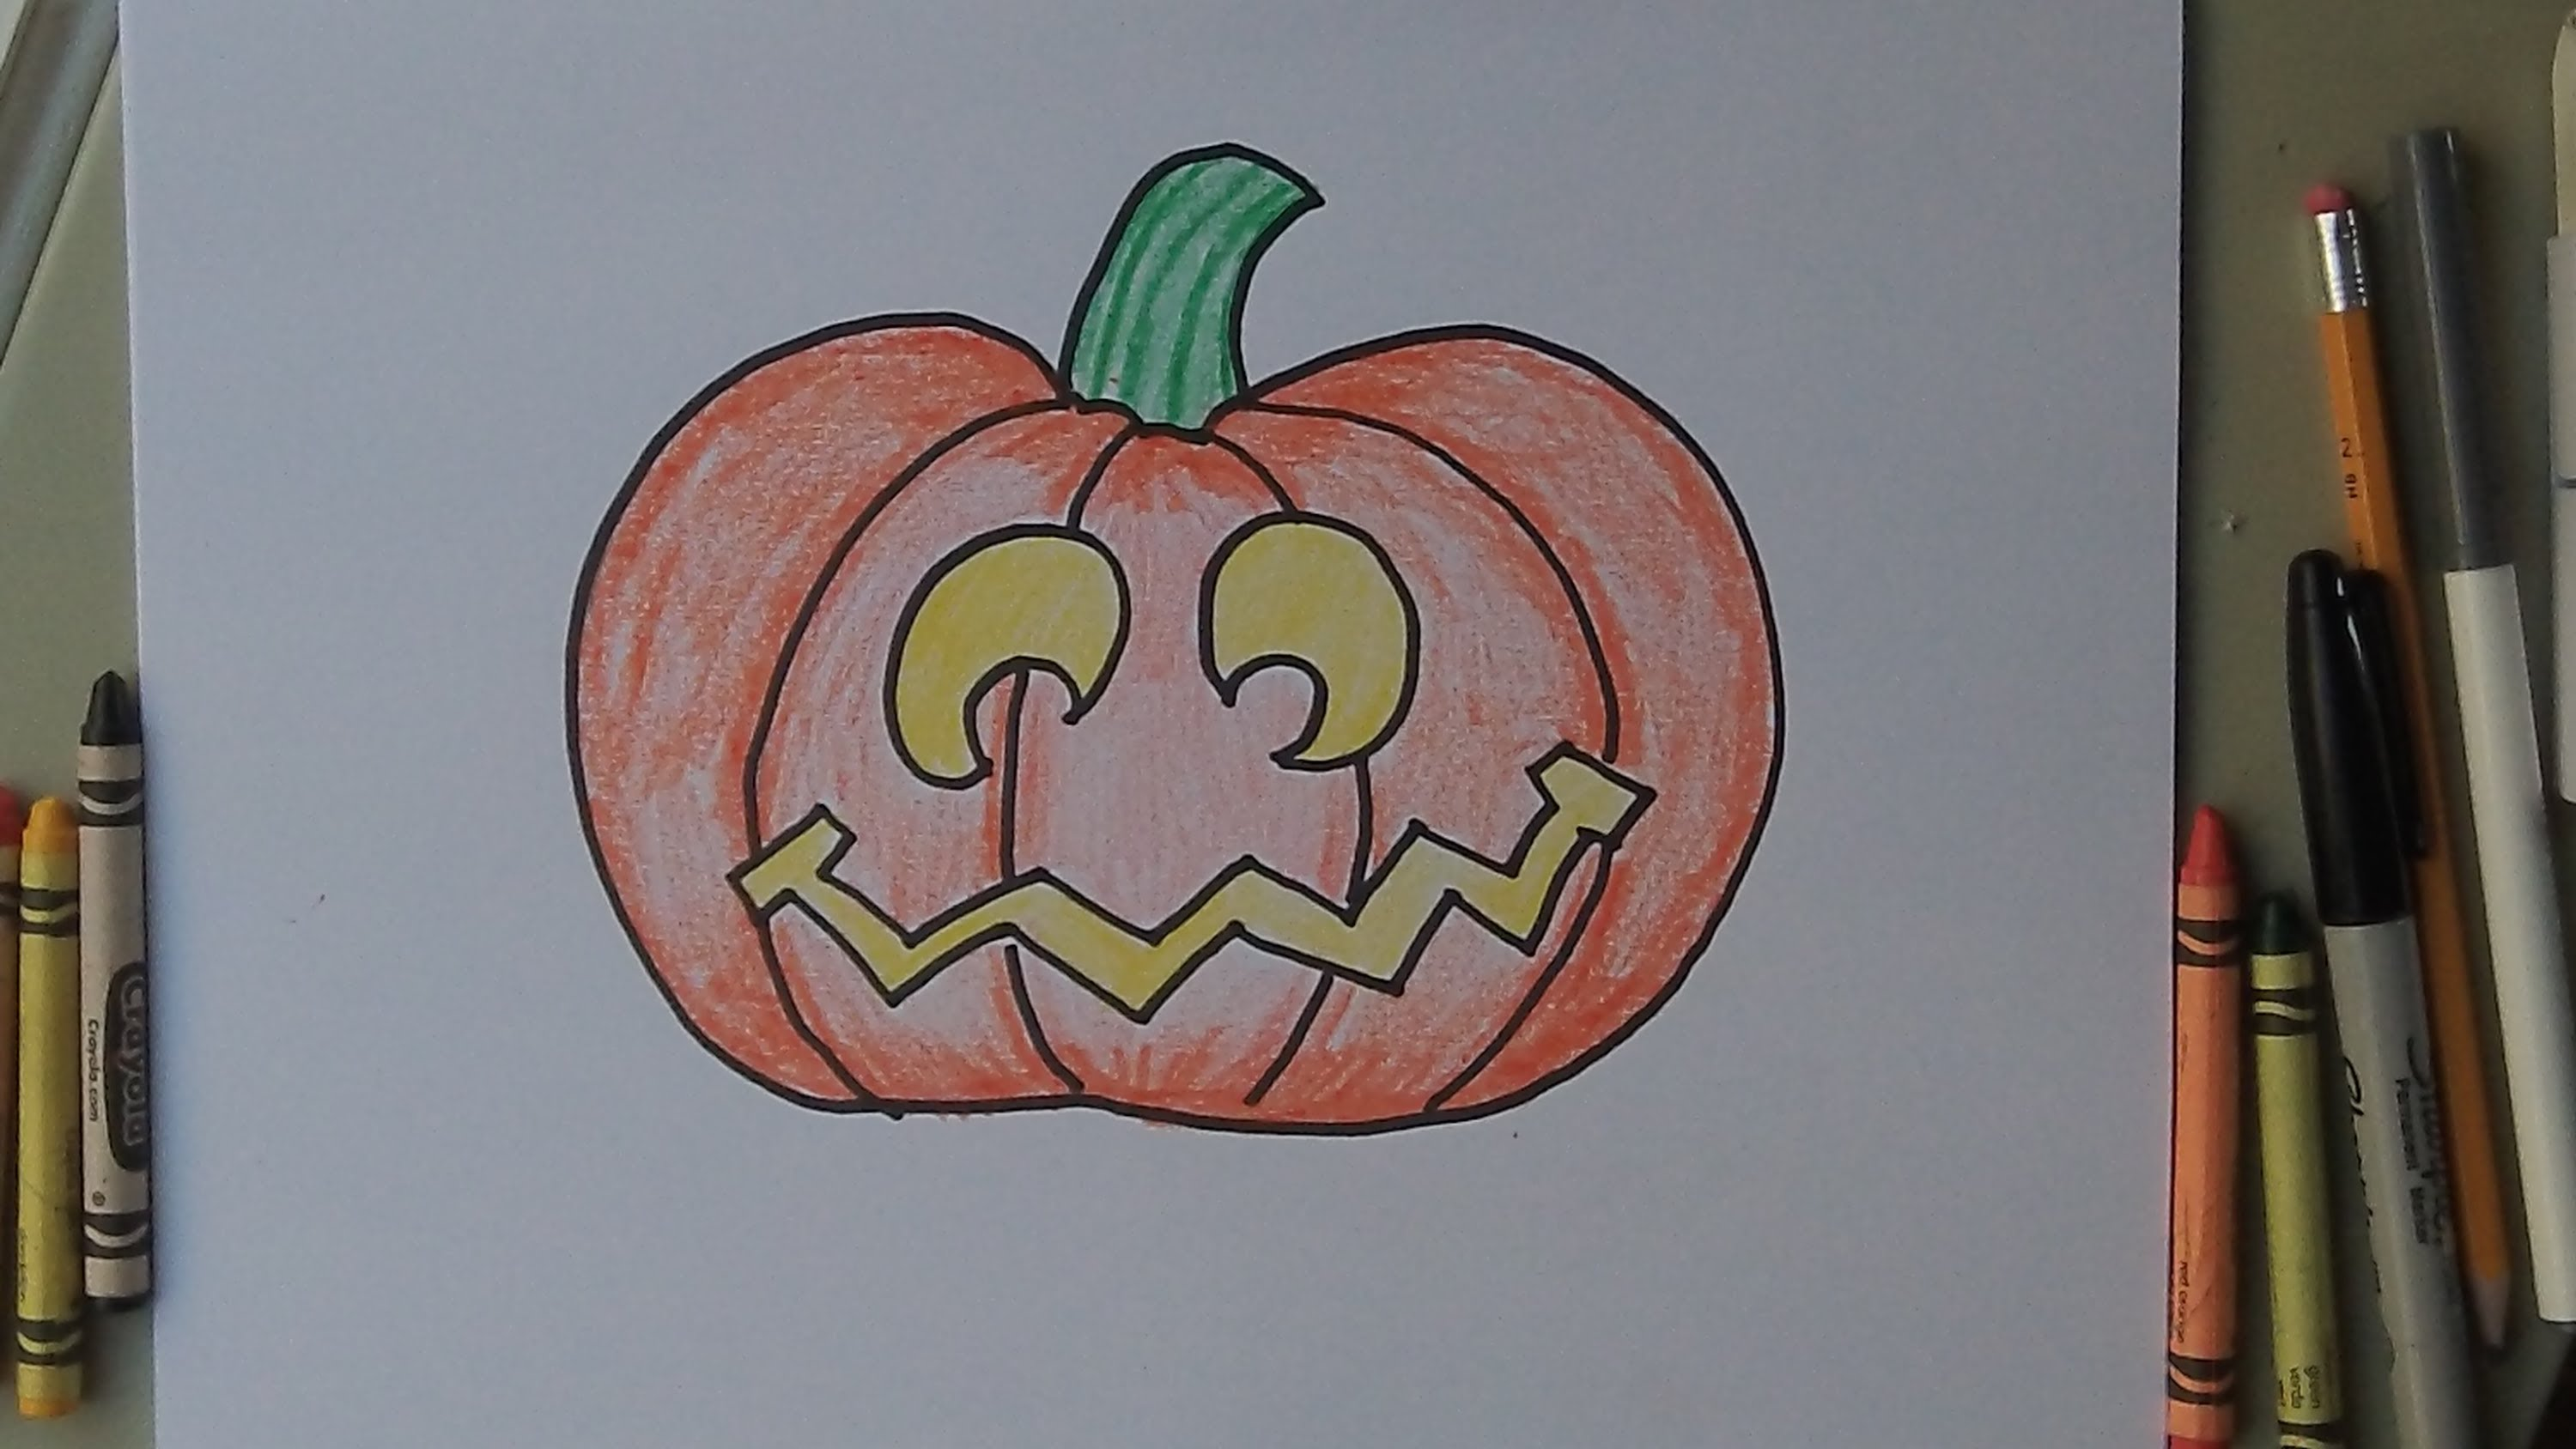 Drawn pumpkin easy A By To for lantern